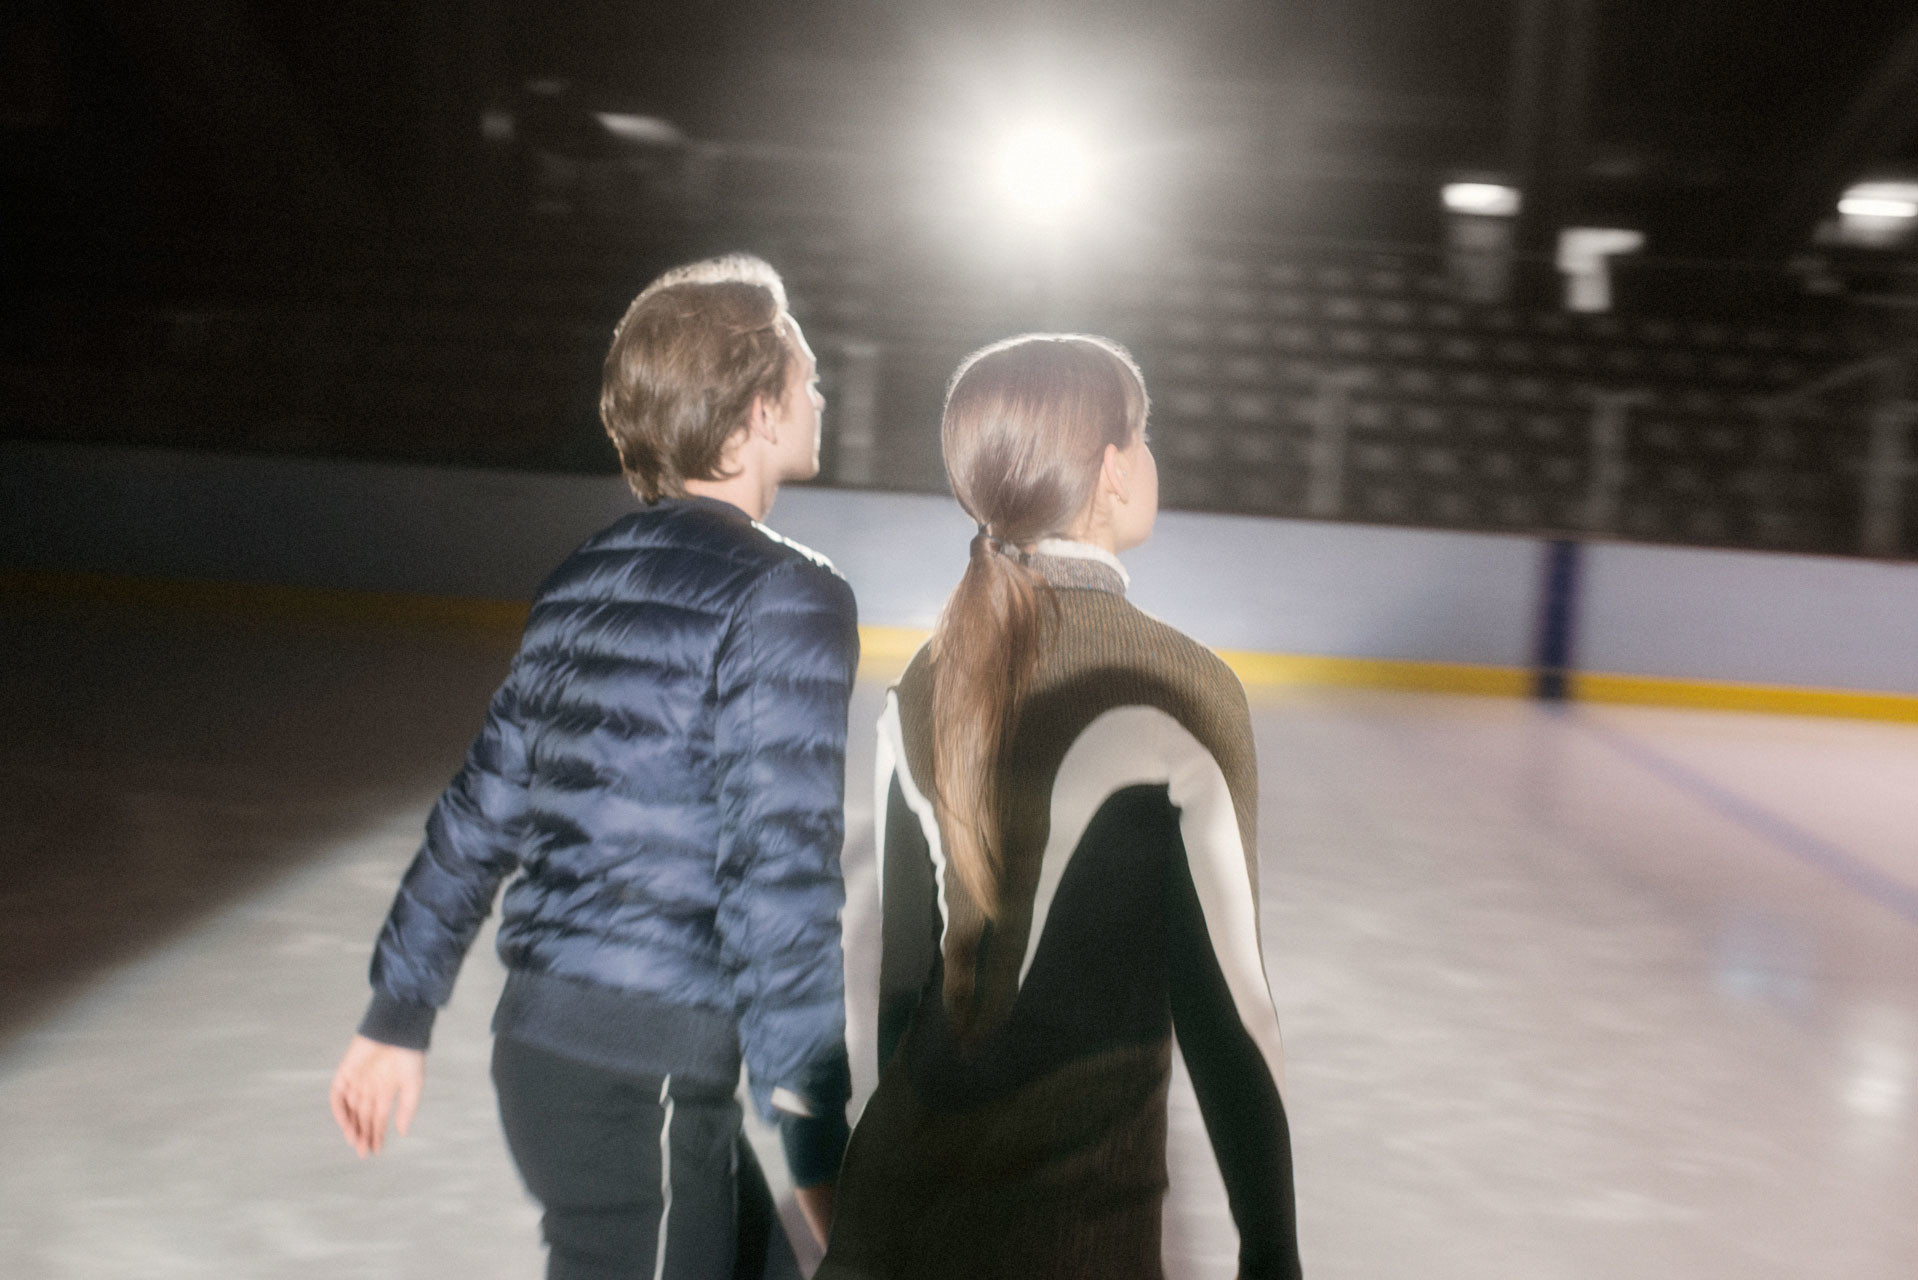 timo-stammberger-photography-fotografie-eiskunstlauf-fashion-ice-skating-05